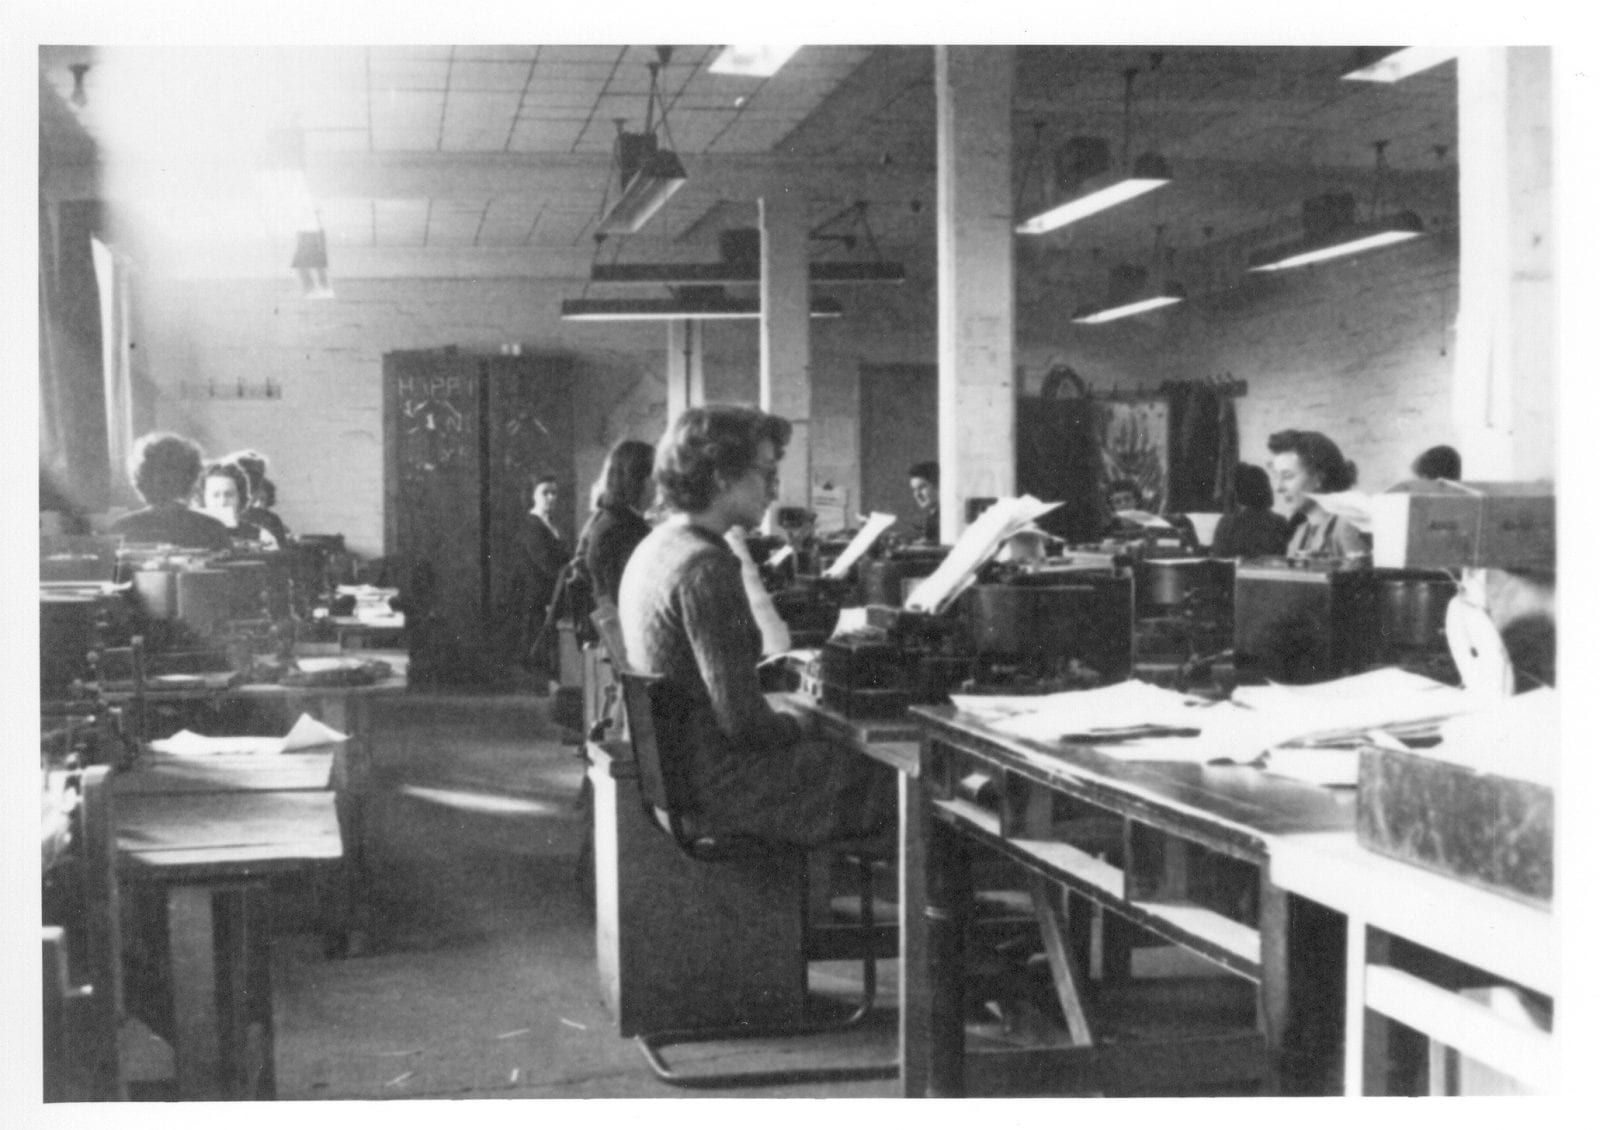 Codebreaking at Bletchley Park: How a Victorian mansion changed the course of WWII, The Manc